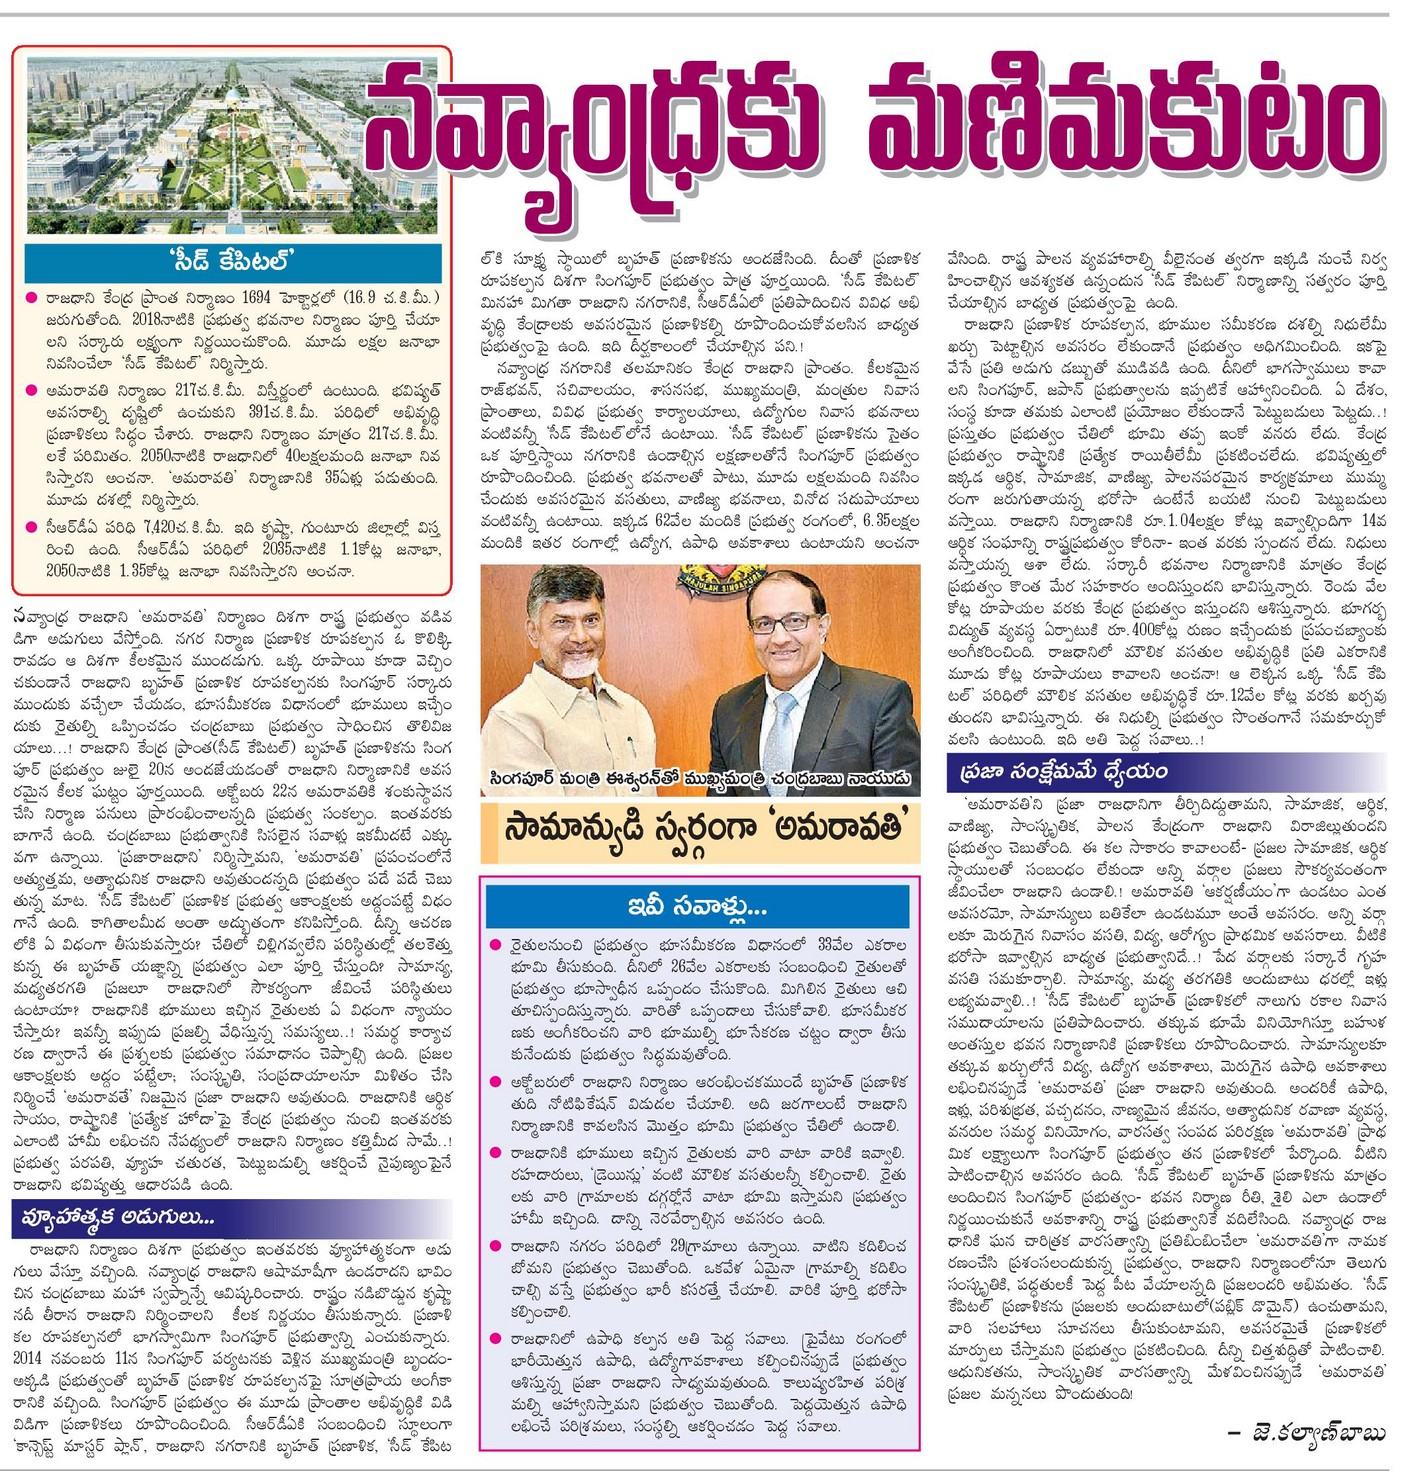 Andhra Pradesh capital Amaravathi progress